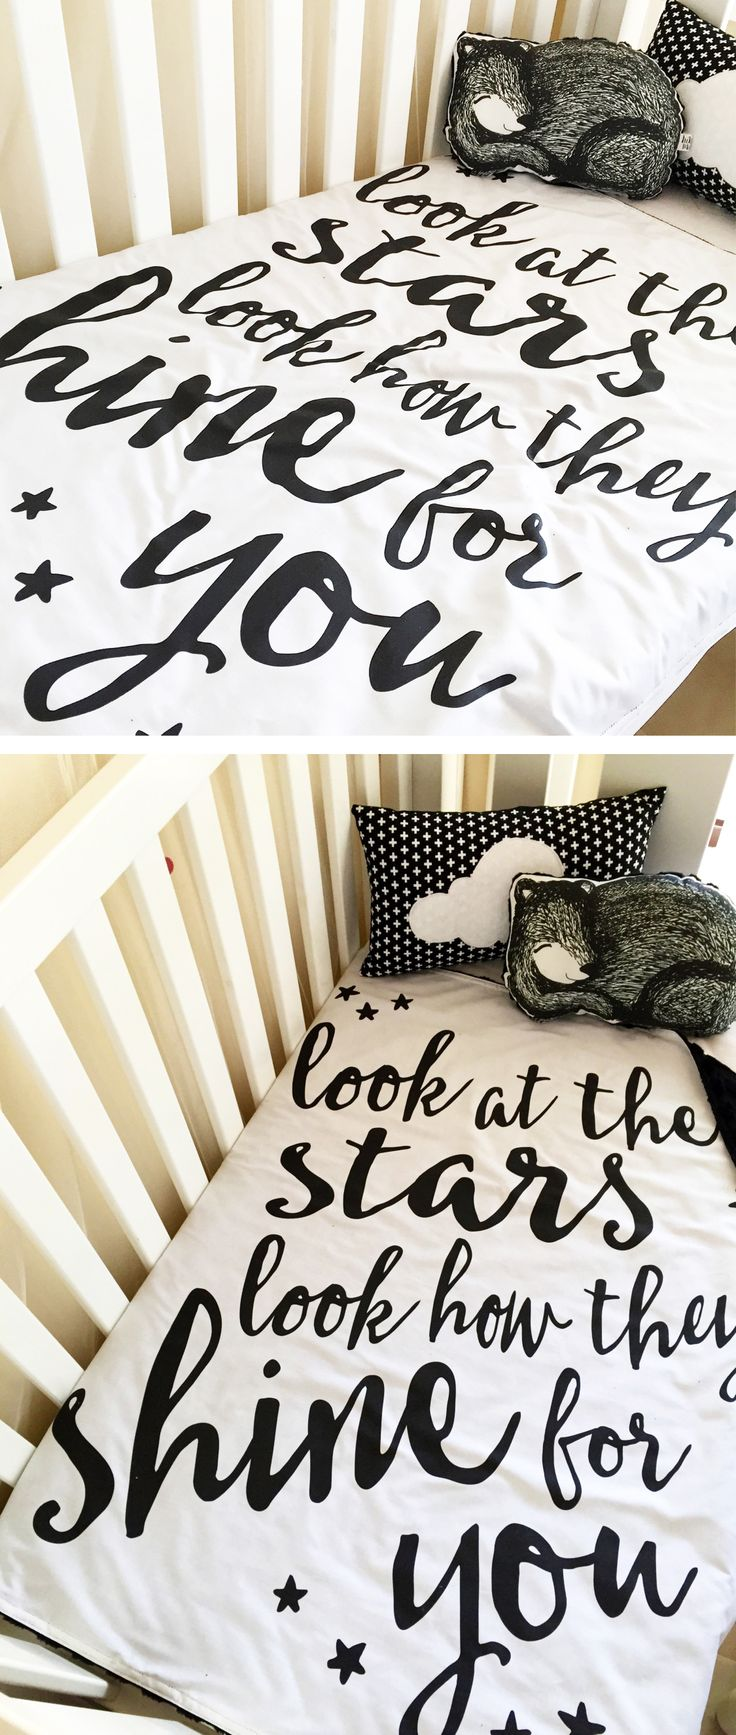 Look at the stars - Deluxe Monochrome Minky Cot Blanket - Boutique Crib Bedding